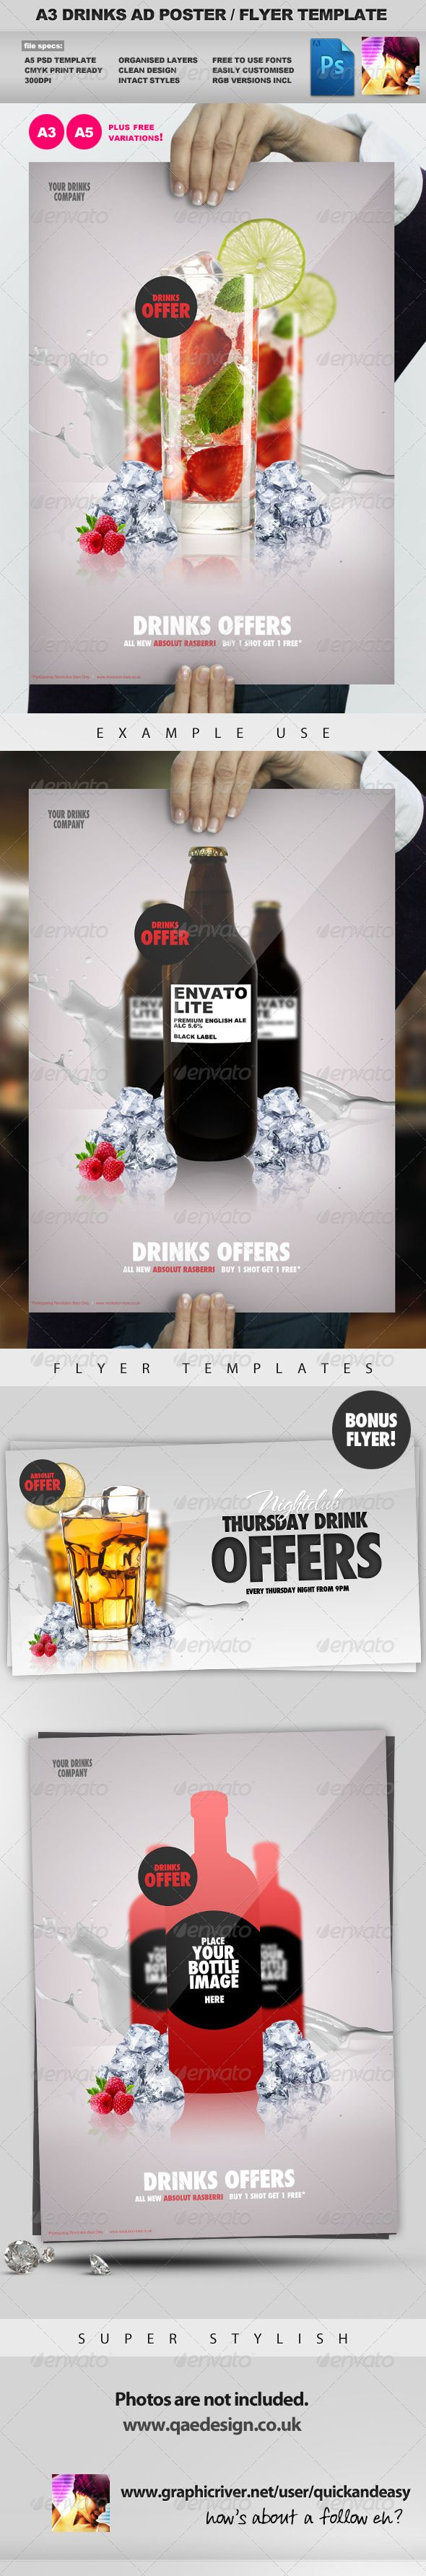 Advertising Poster Templates Magnificent A3 Drinks Promotion Advertisement Poster Template  Pinterest .